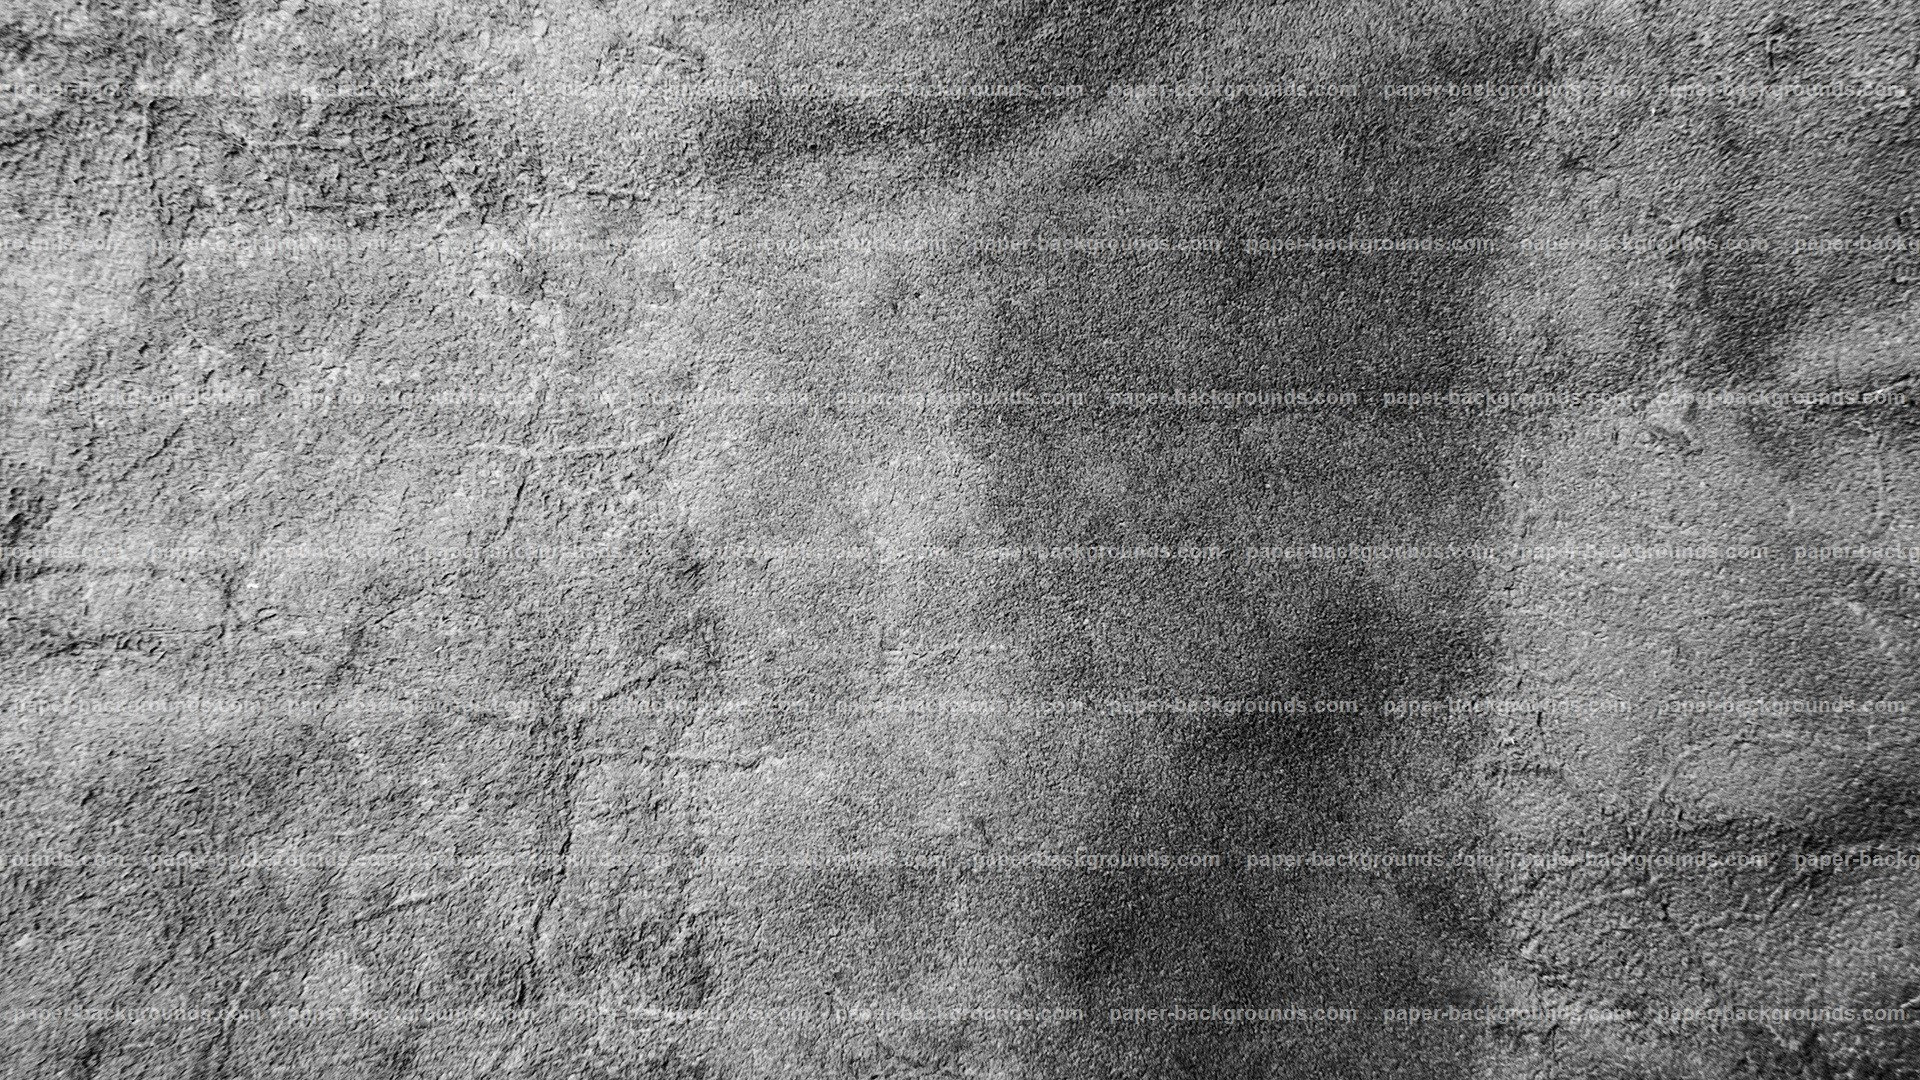 Paper Backgrounds   Gray Grunge Soft Leather Texture Background HD